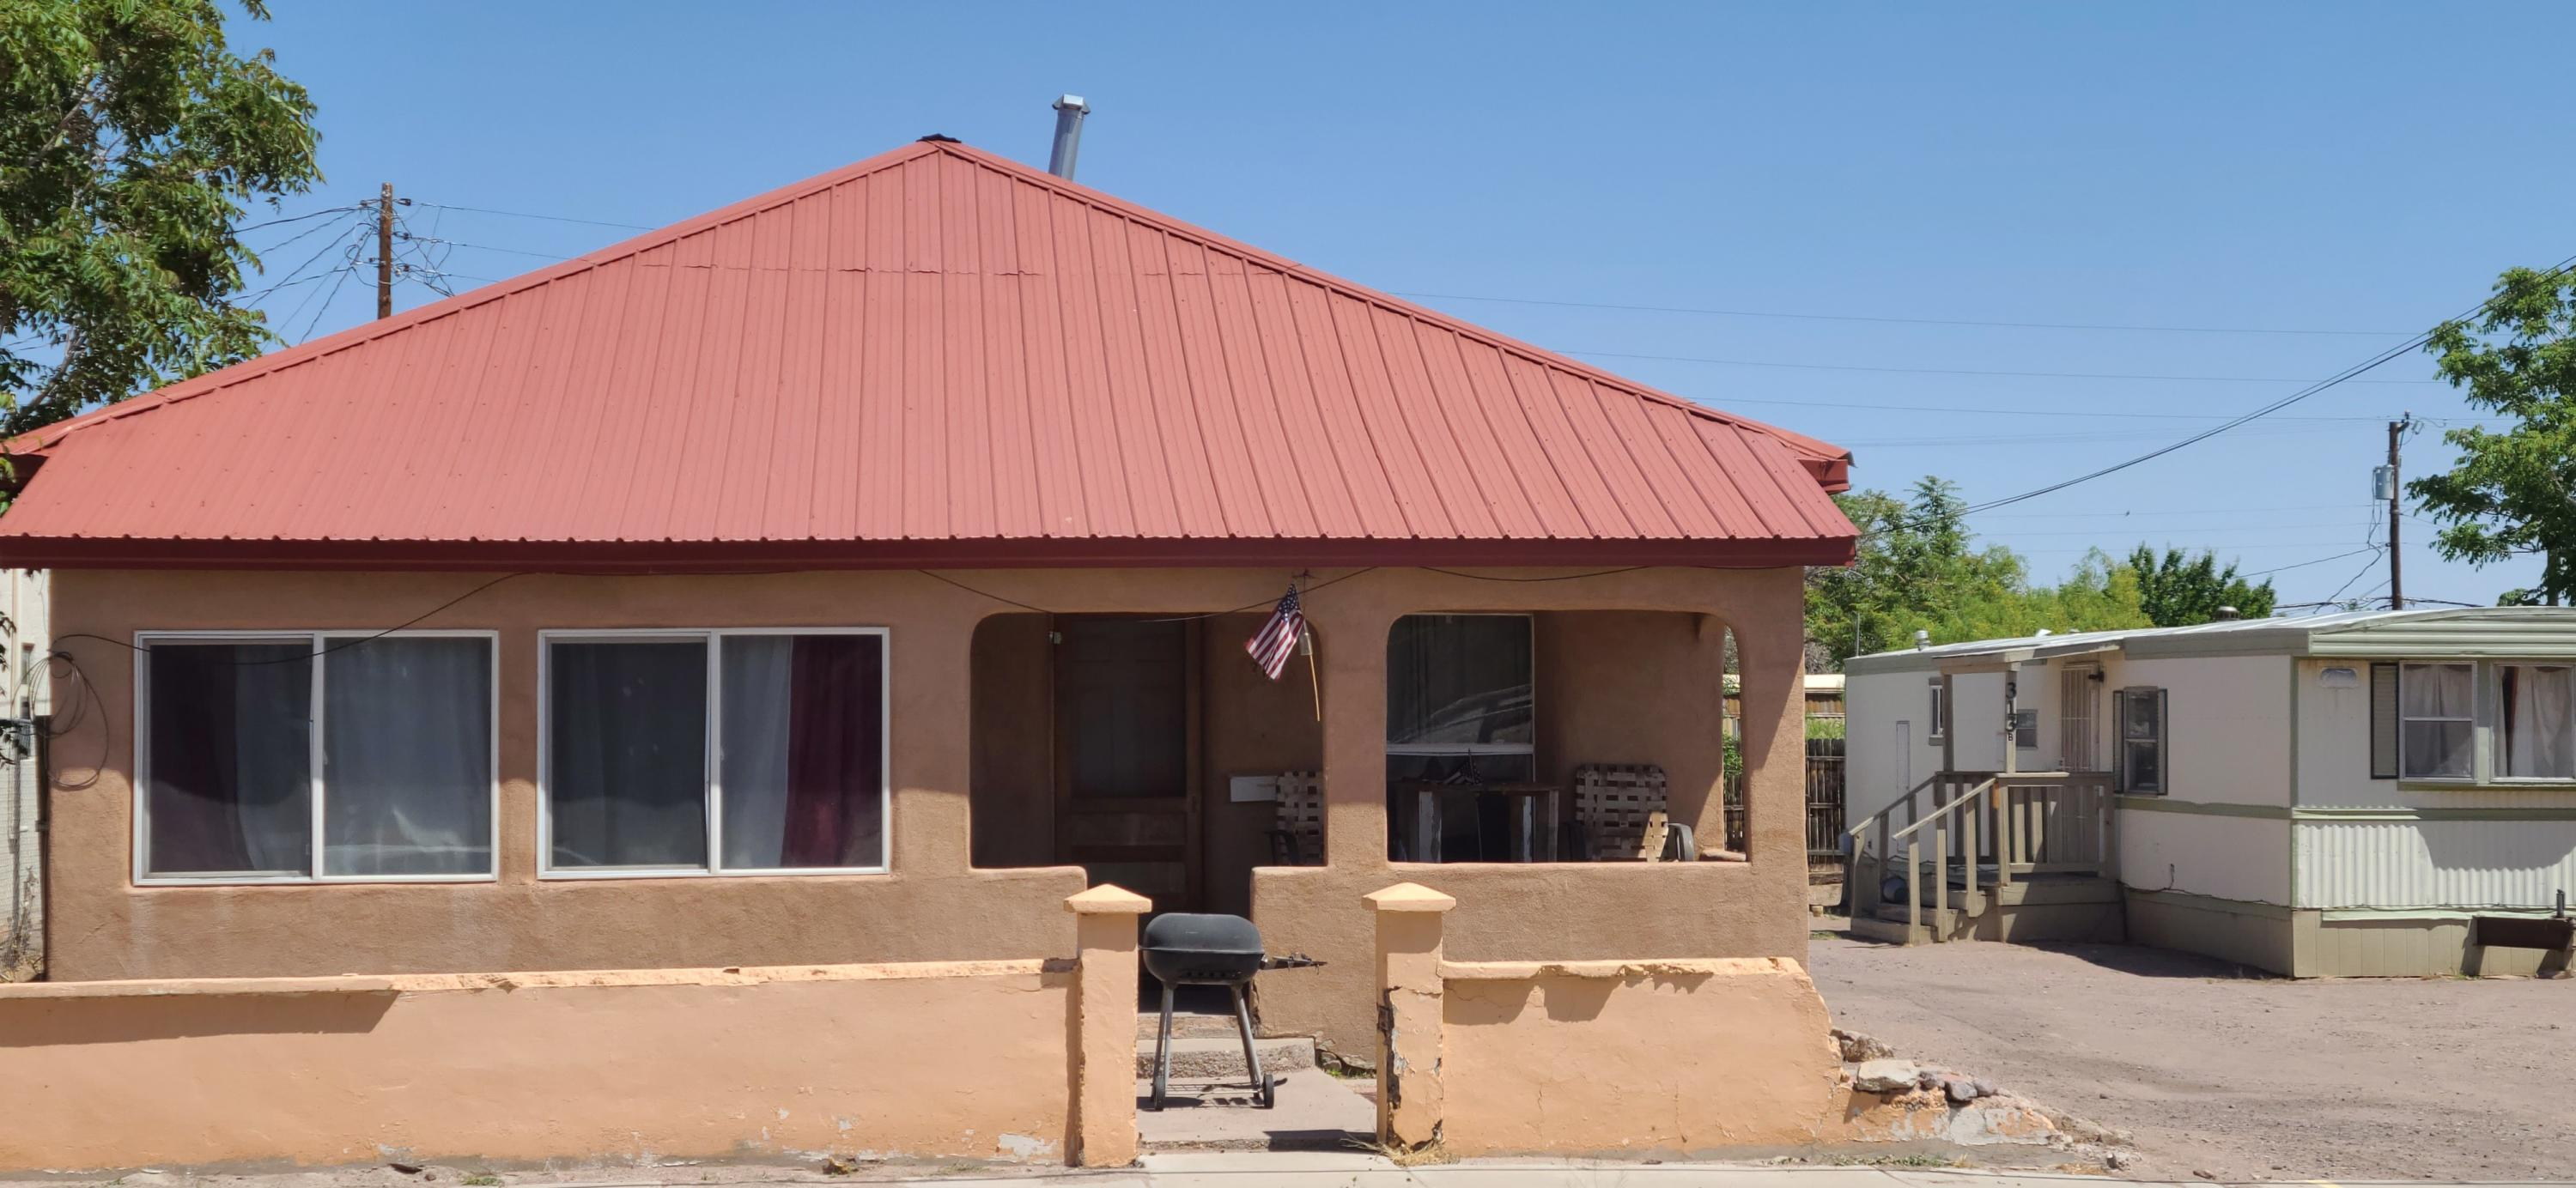 Two Bedroom, one bath near center of Socorro, NM with rental potential of MH that will convey with property.